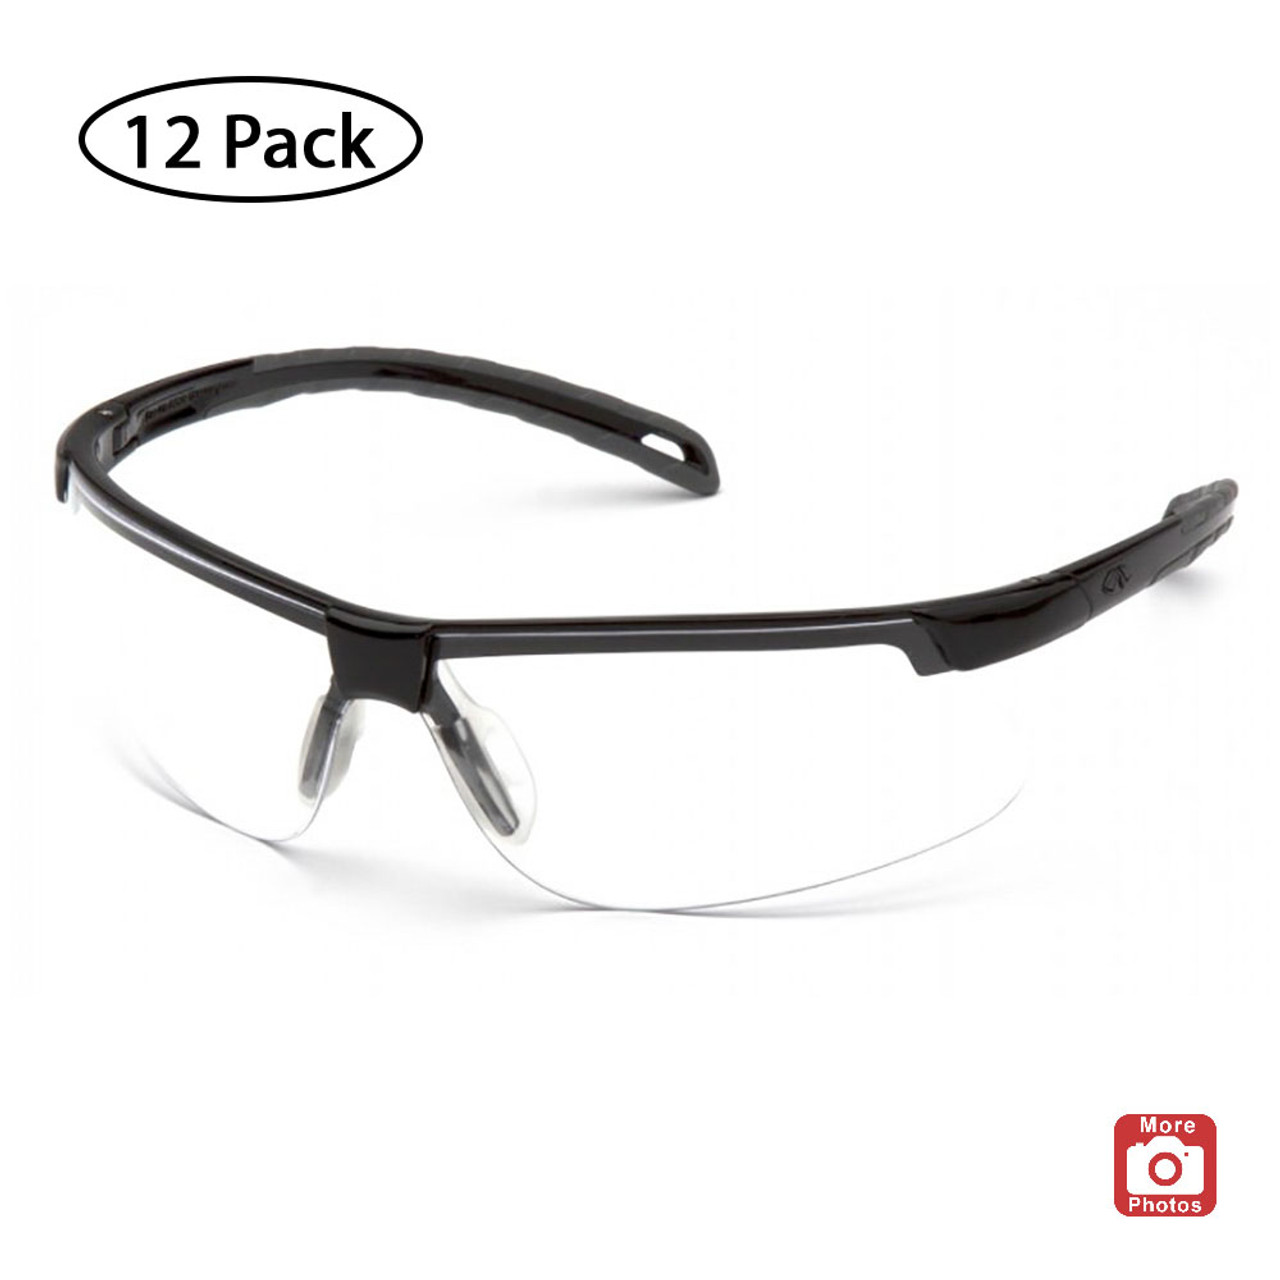 Pyramex Ever-Lite Series Safety Glasses with H2X Anti-Fog Lens, 12 Pack